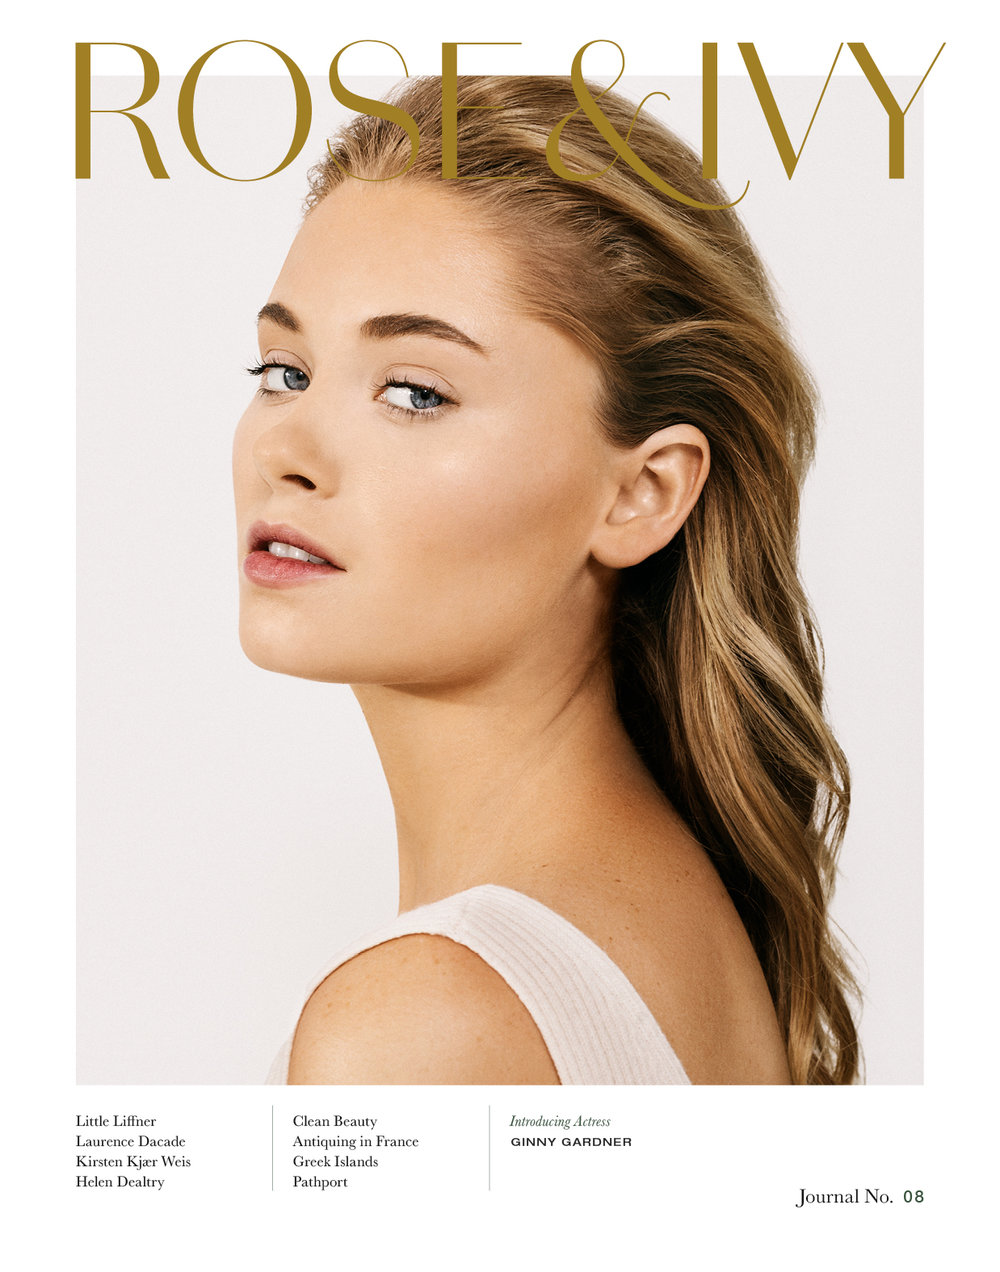 ROSE & IVY Journal Introducing Issue No.08 Starring Actress Ginny Gardener